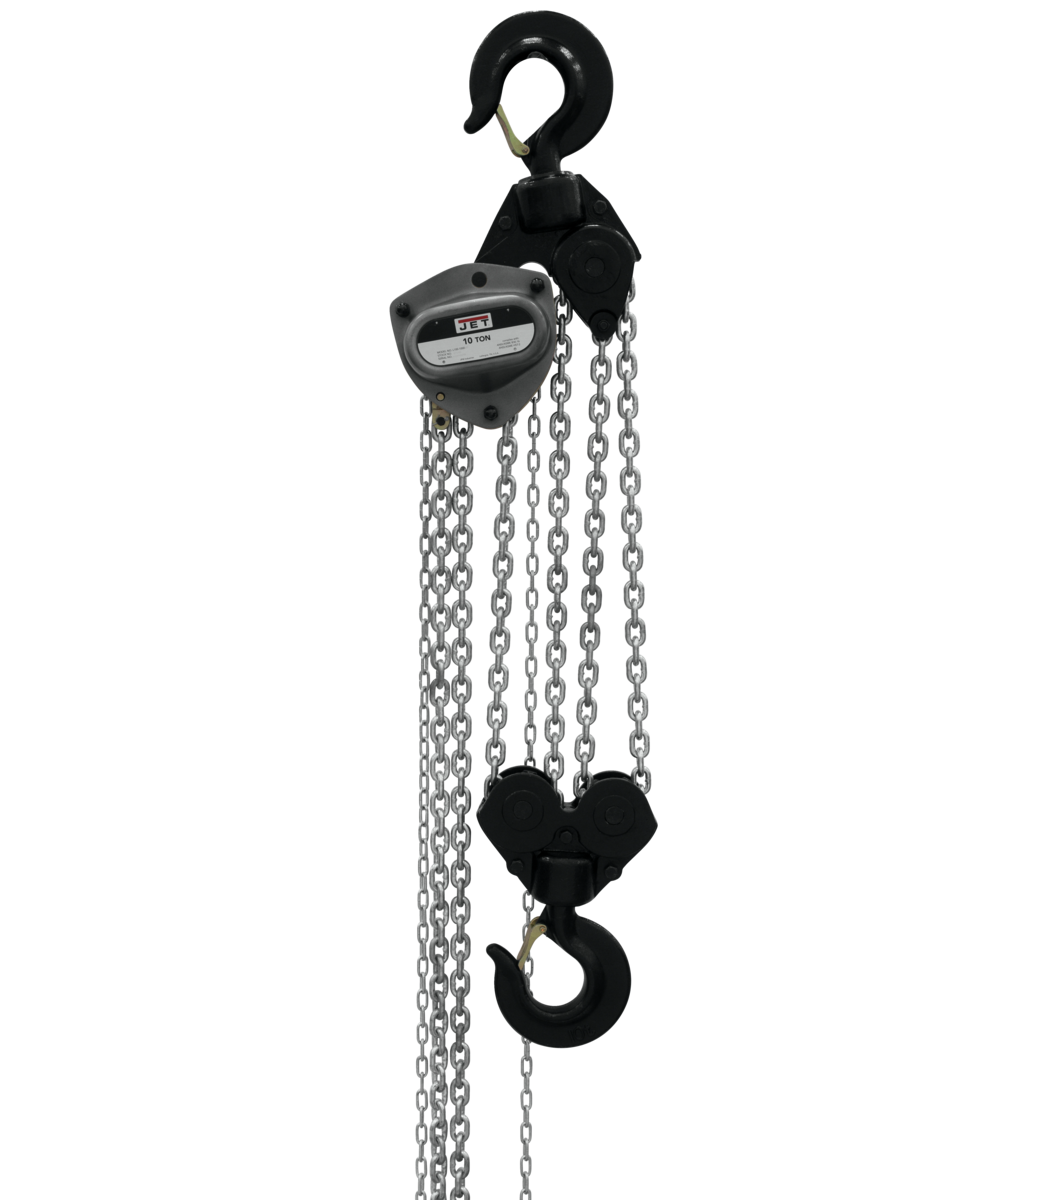 L-100-1000WO-15, 10-Ton Hand Chain Hoist With 15' Lift & Overload Protection